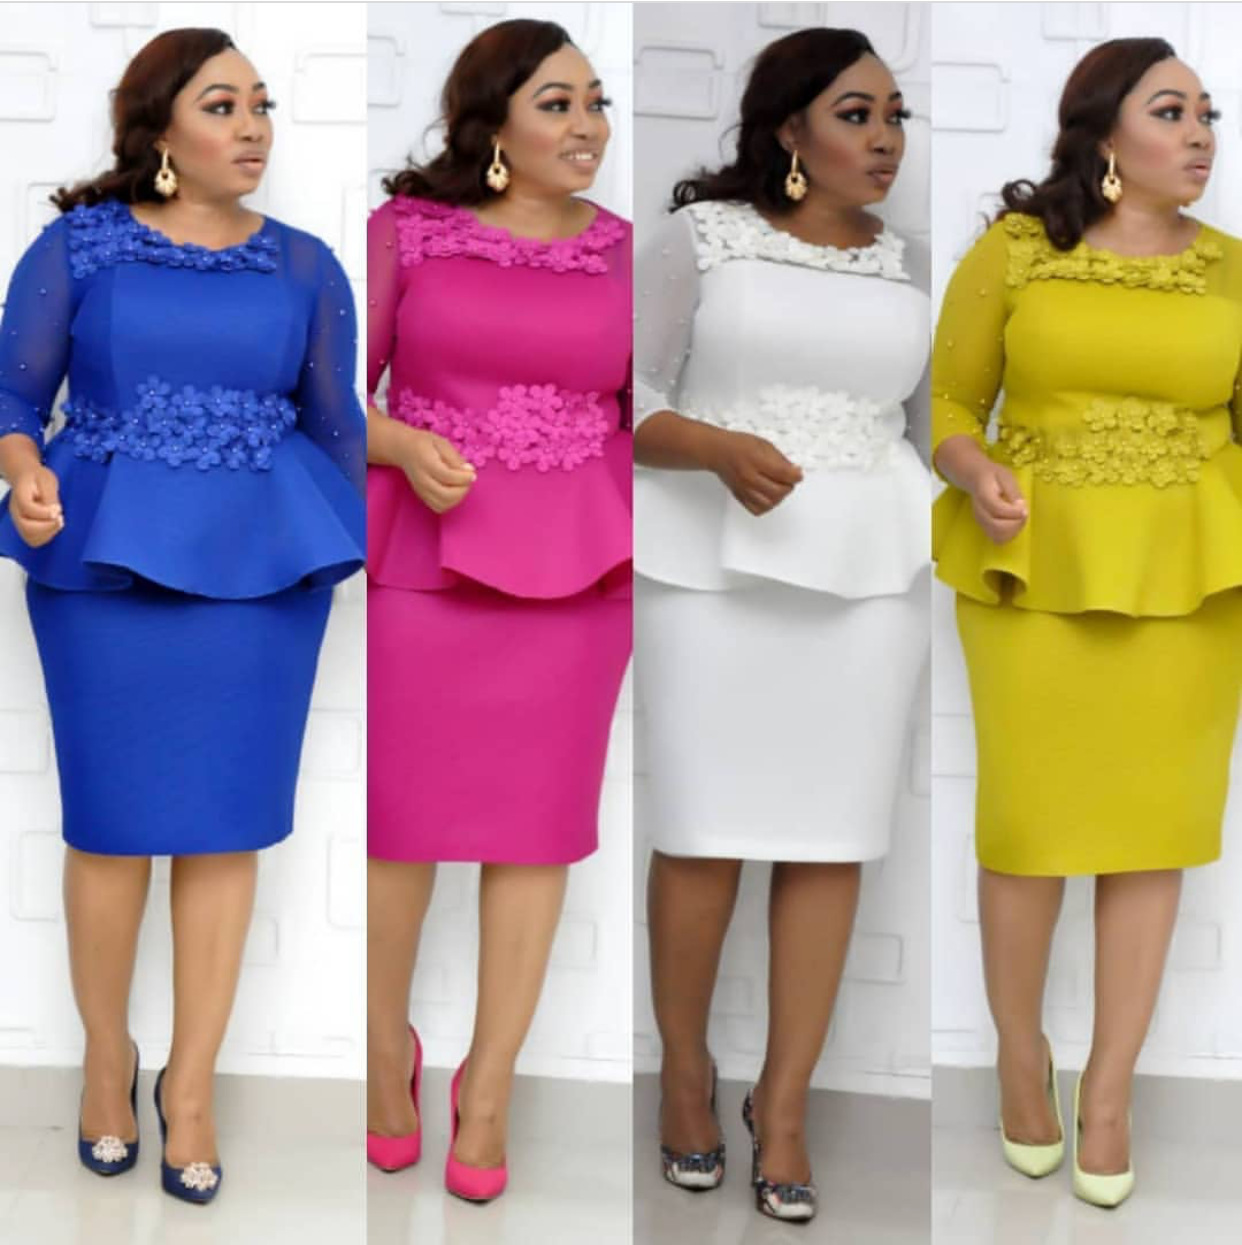 2019 new fashion style autumn african women beauty plus size knee-length dress L-3XL